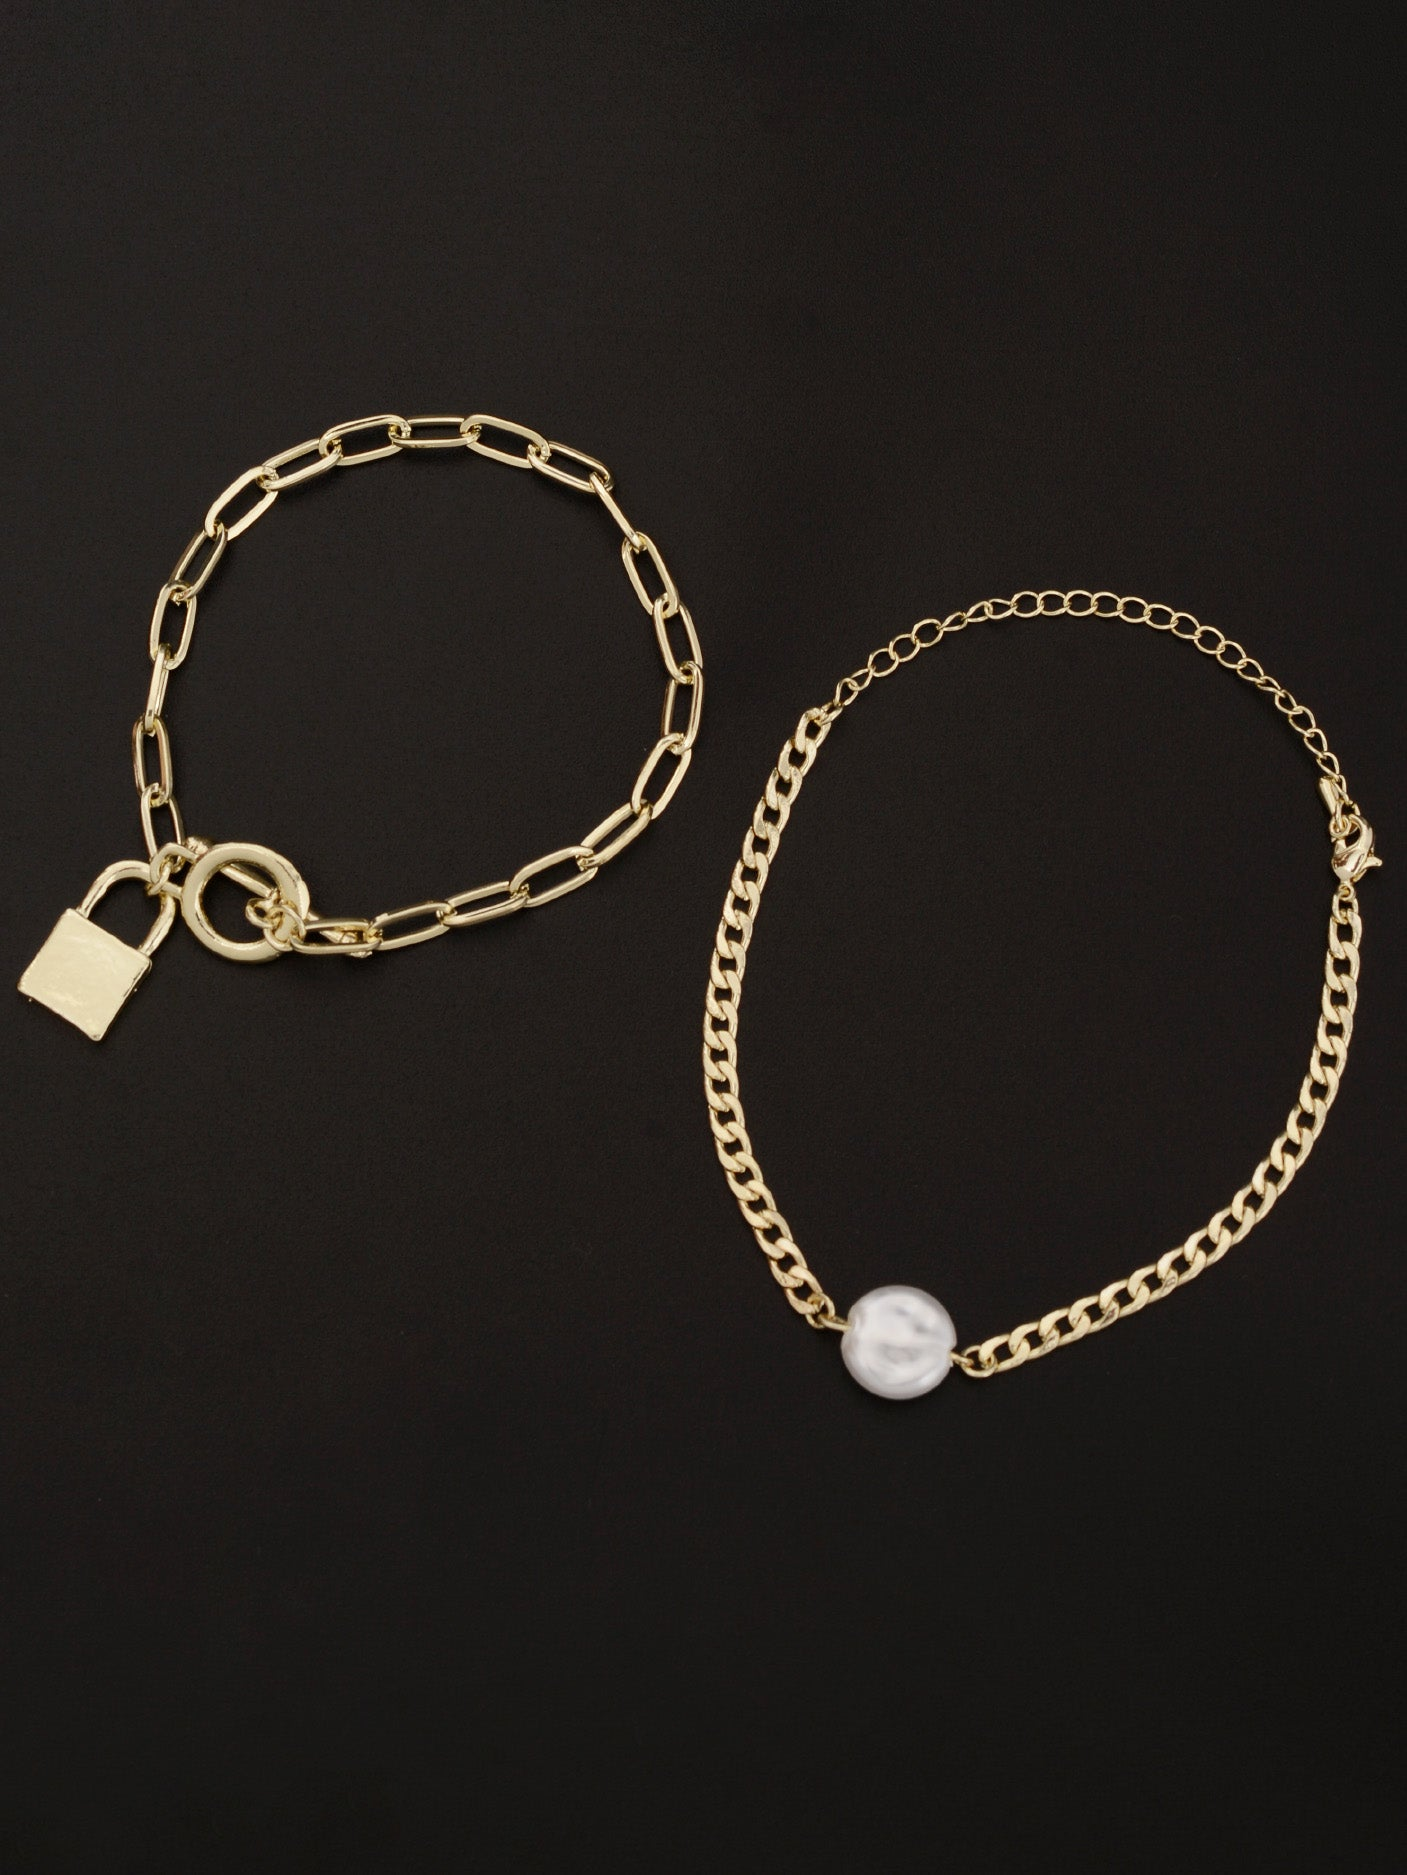 Chained Bracelet Pack